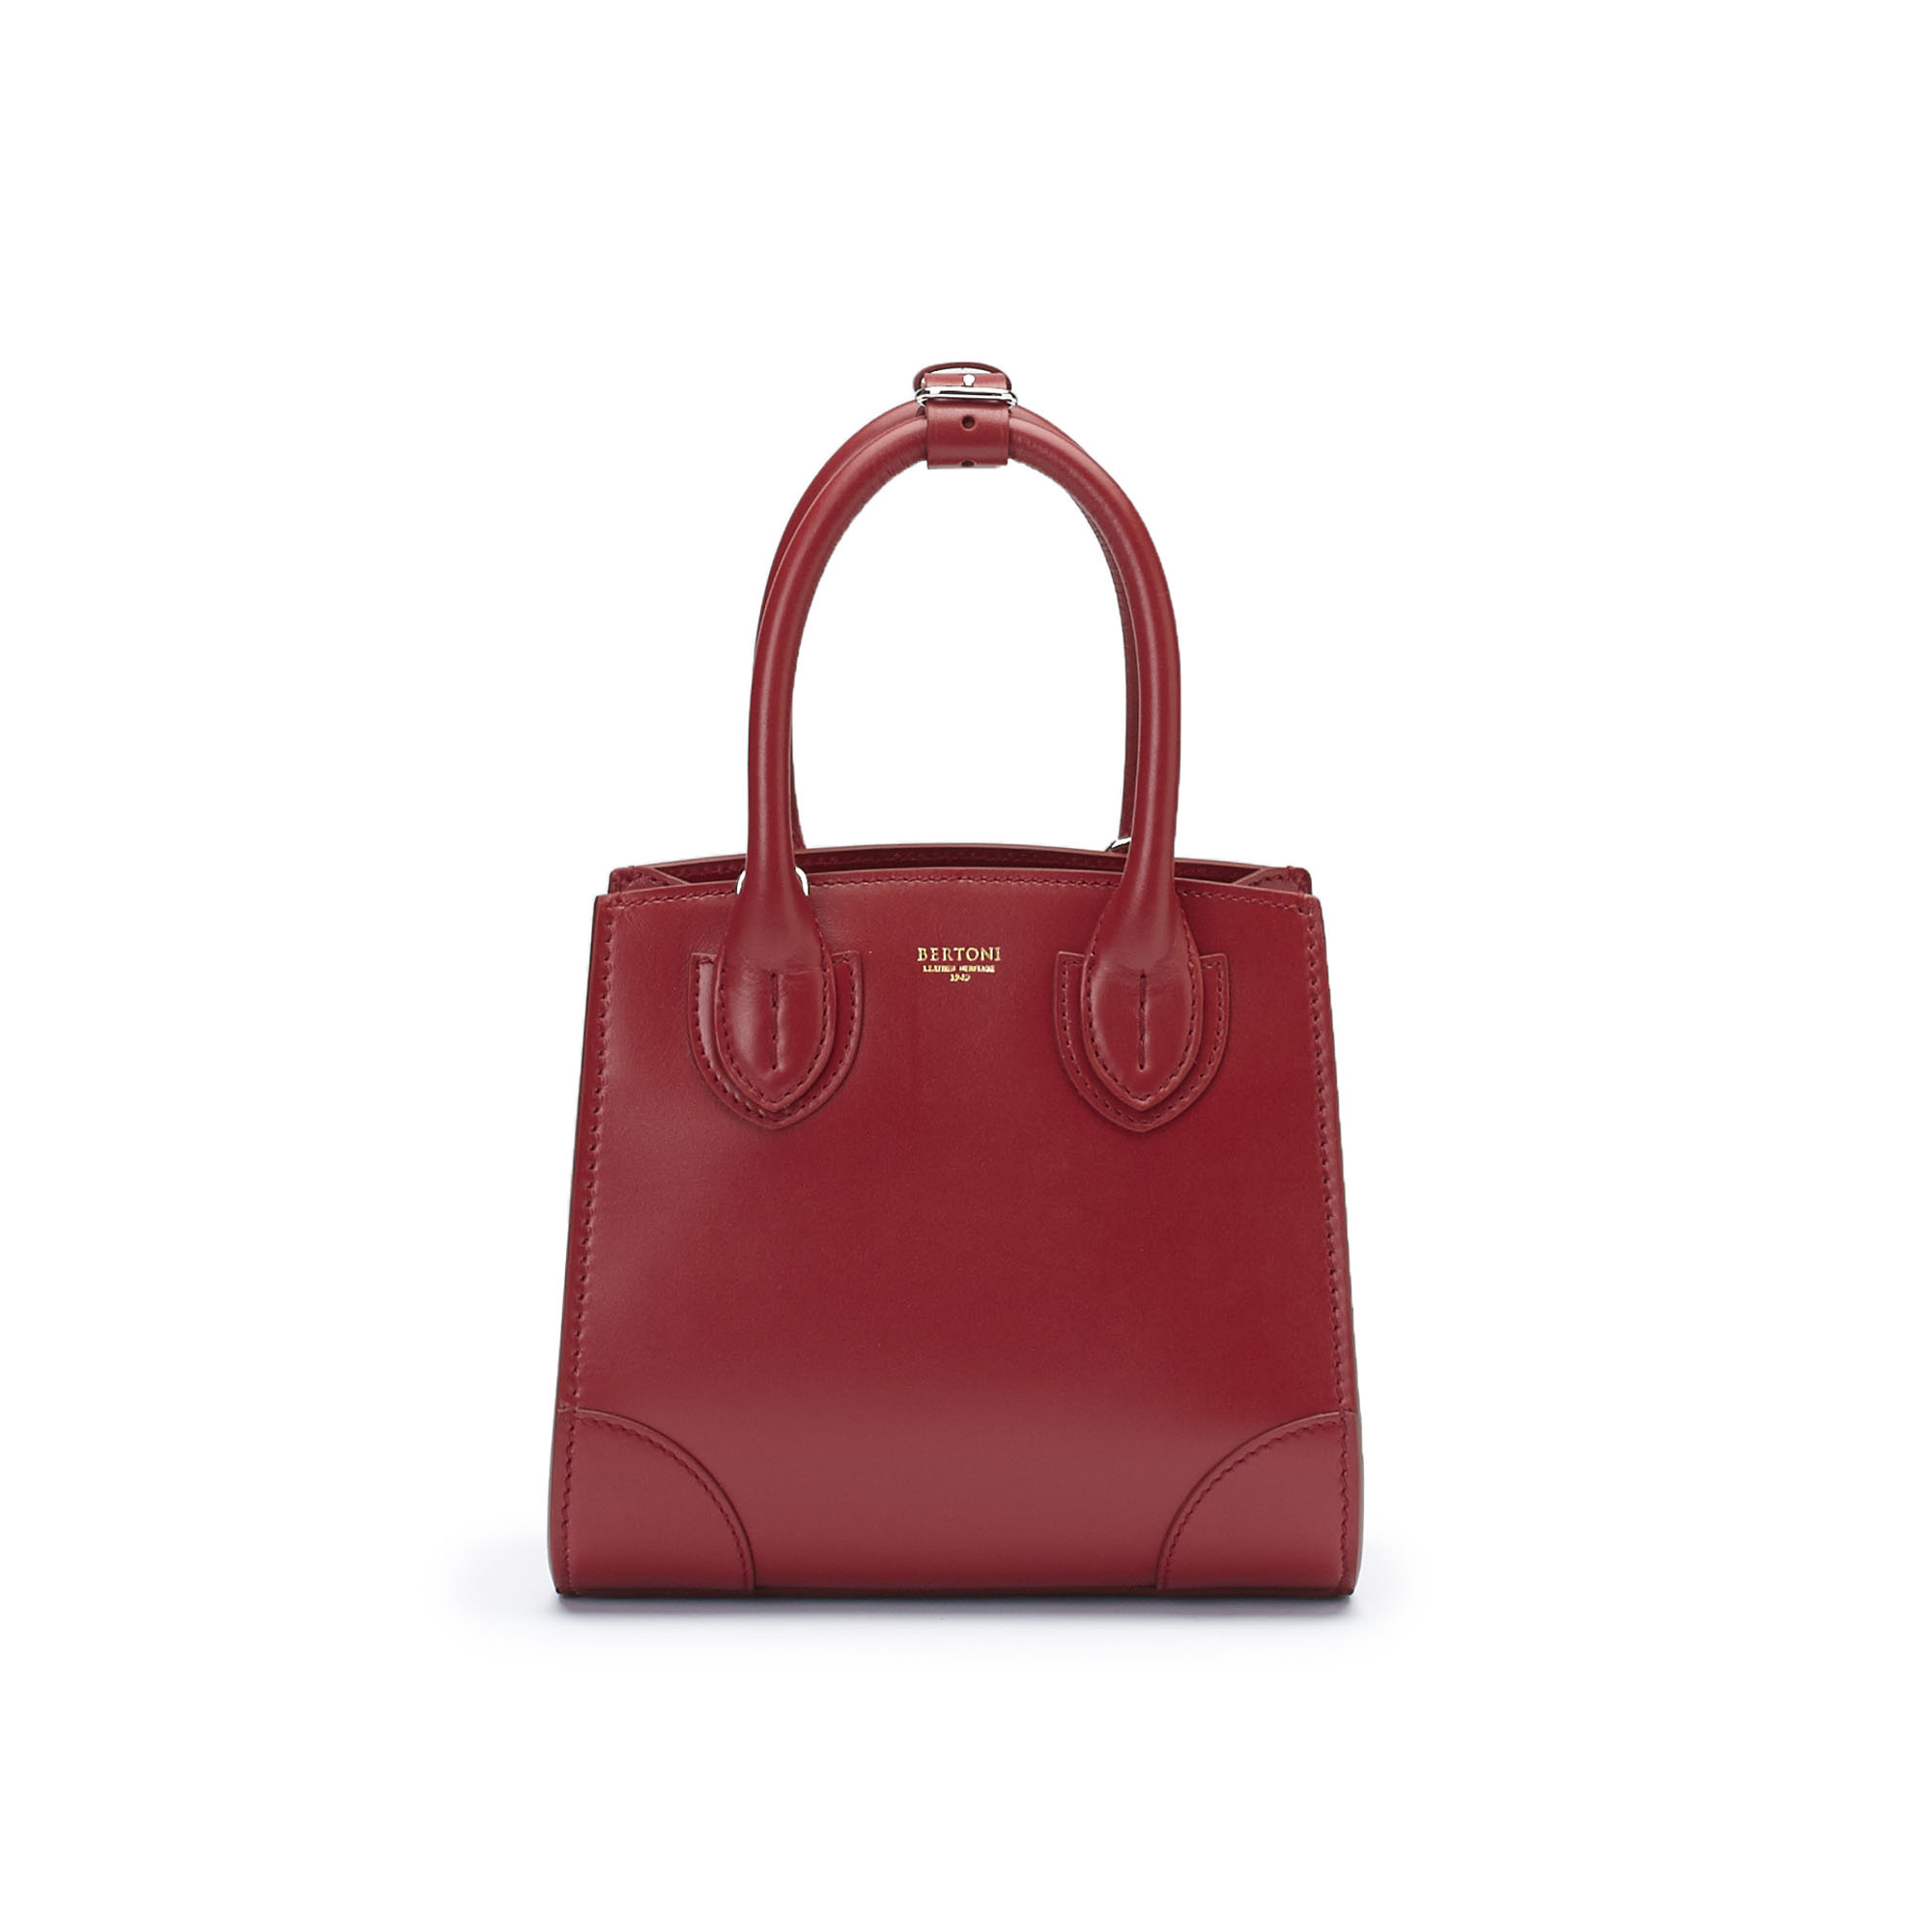 The red french calf Darcy bag by Bertoni 1949 01